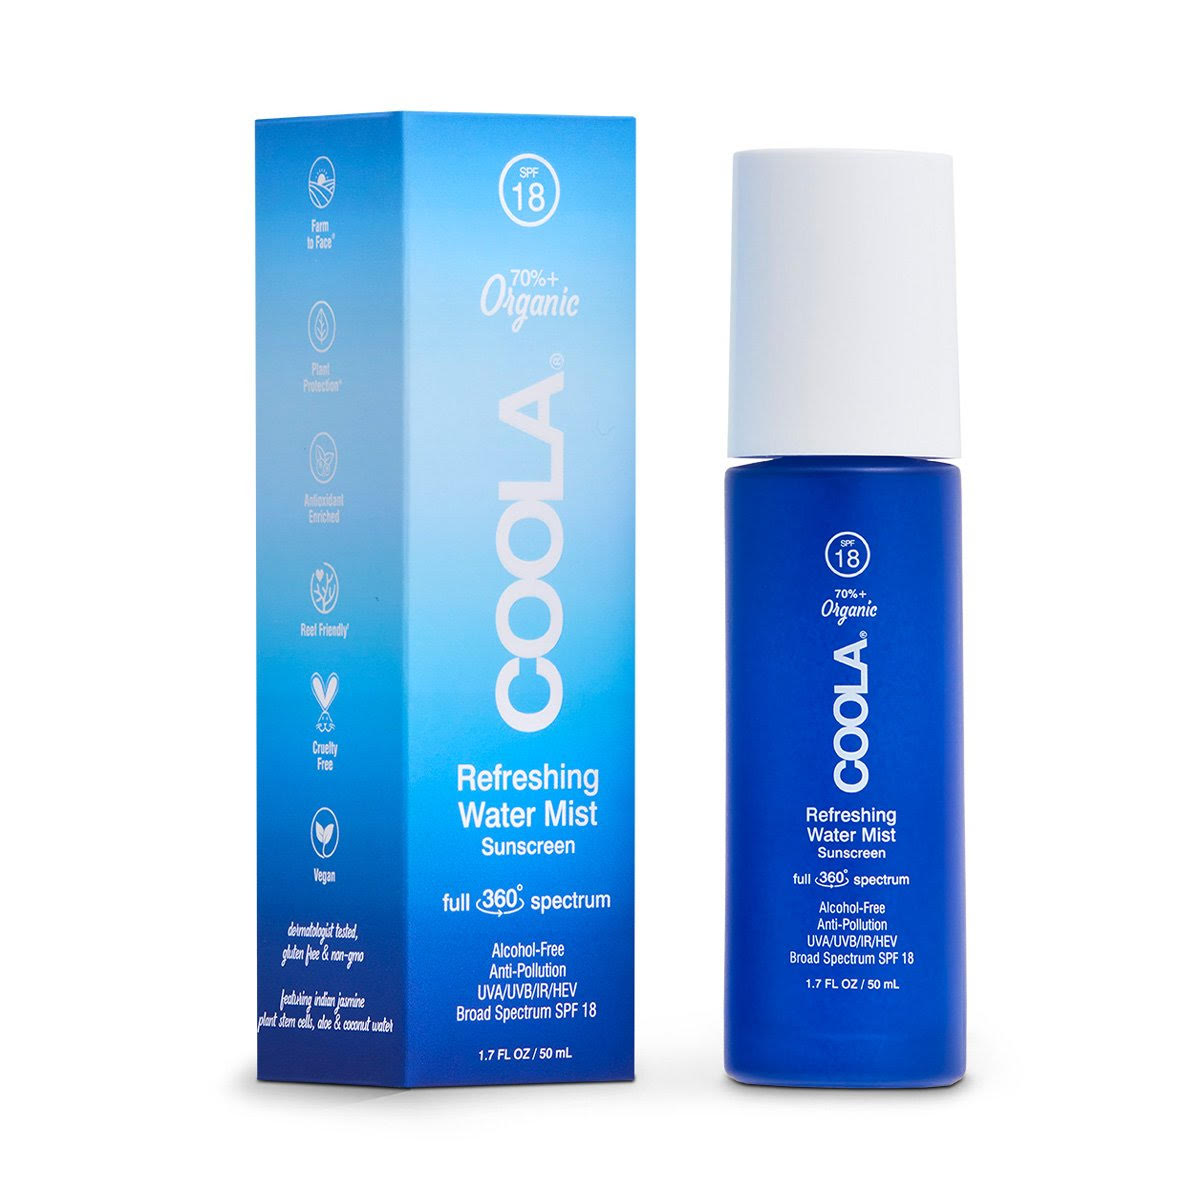 Coola Refreshing Water Mist - Full Size and Travel Size